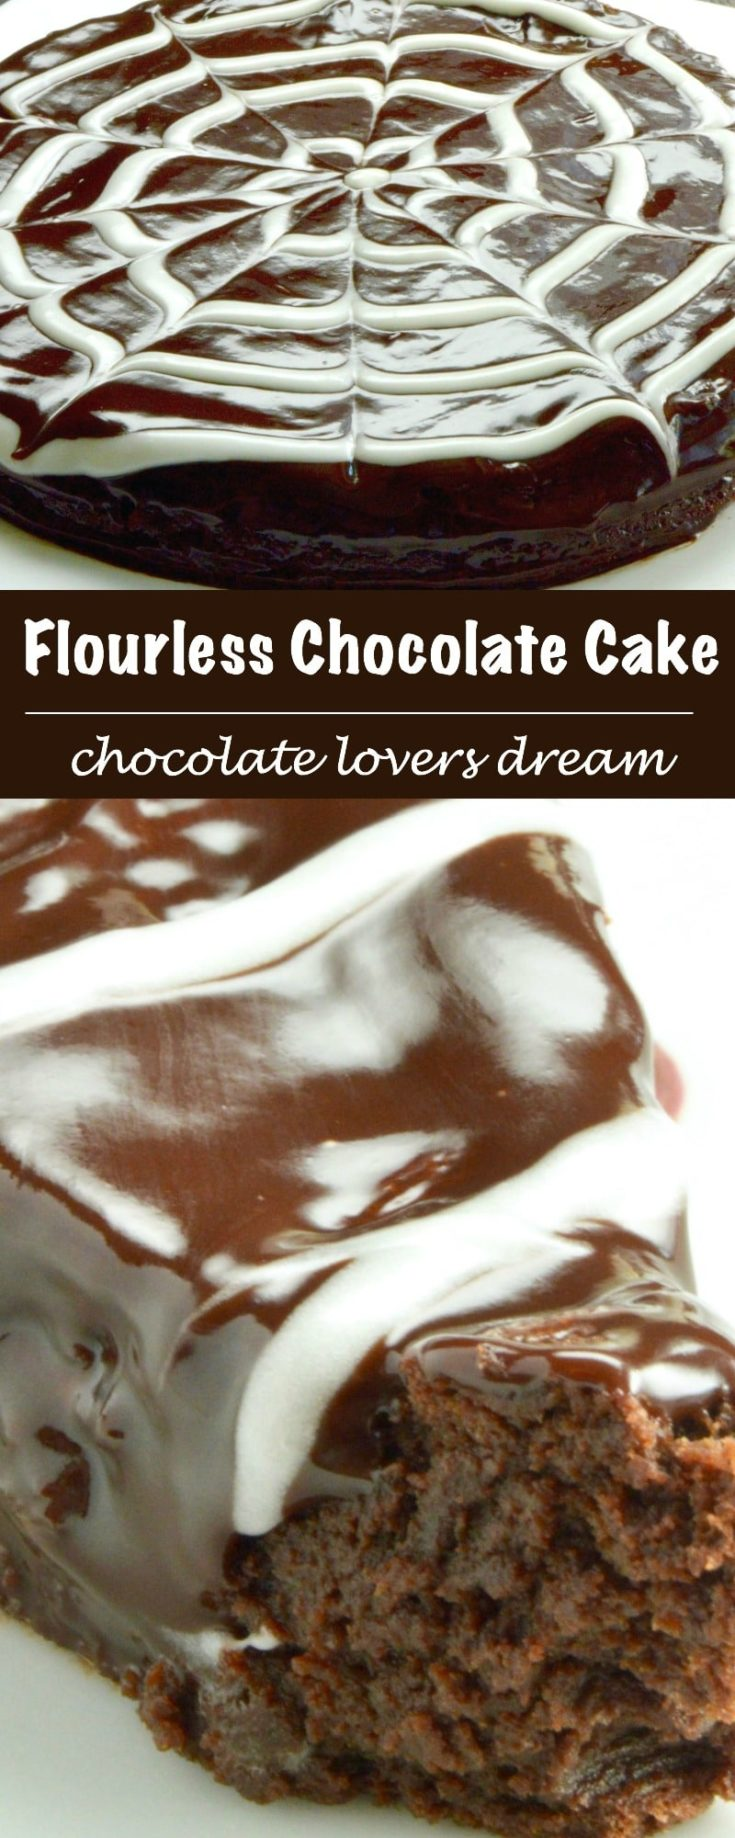 """Flourless chocolate cake is ideal for special occasions. Its fudge, gooey, chocolate lovers heaven in every bite. You can """"fancy"""" it up with simple tricks to decorate the top too!"""